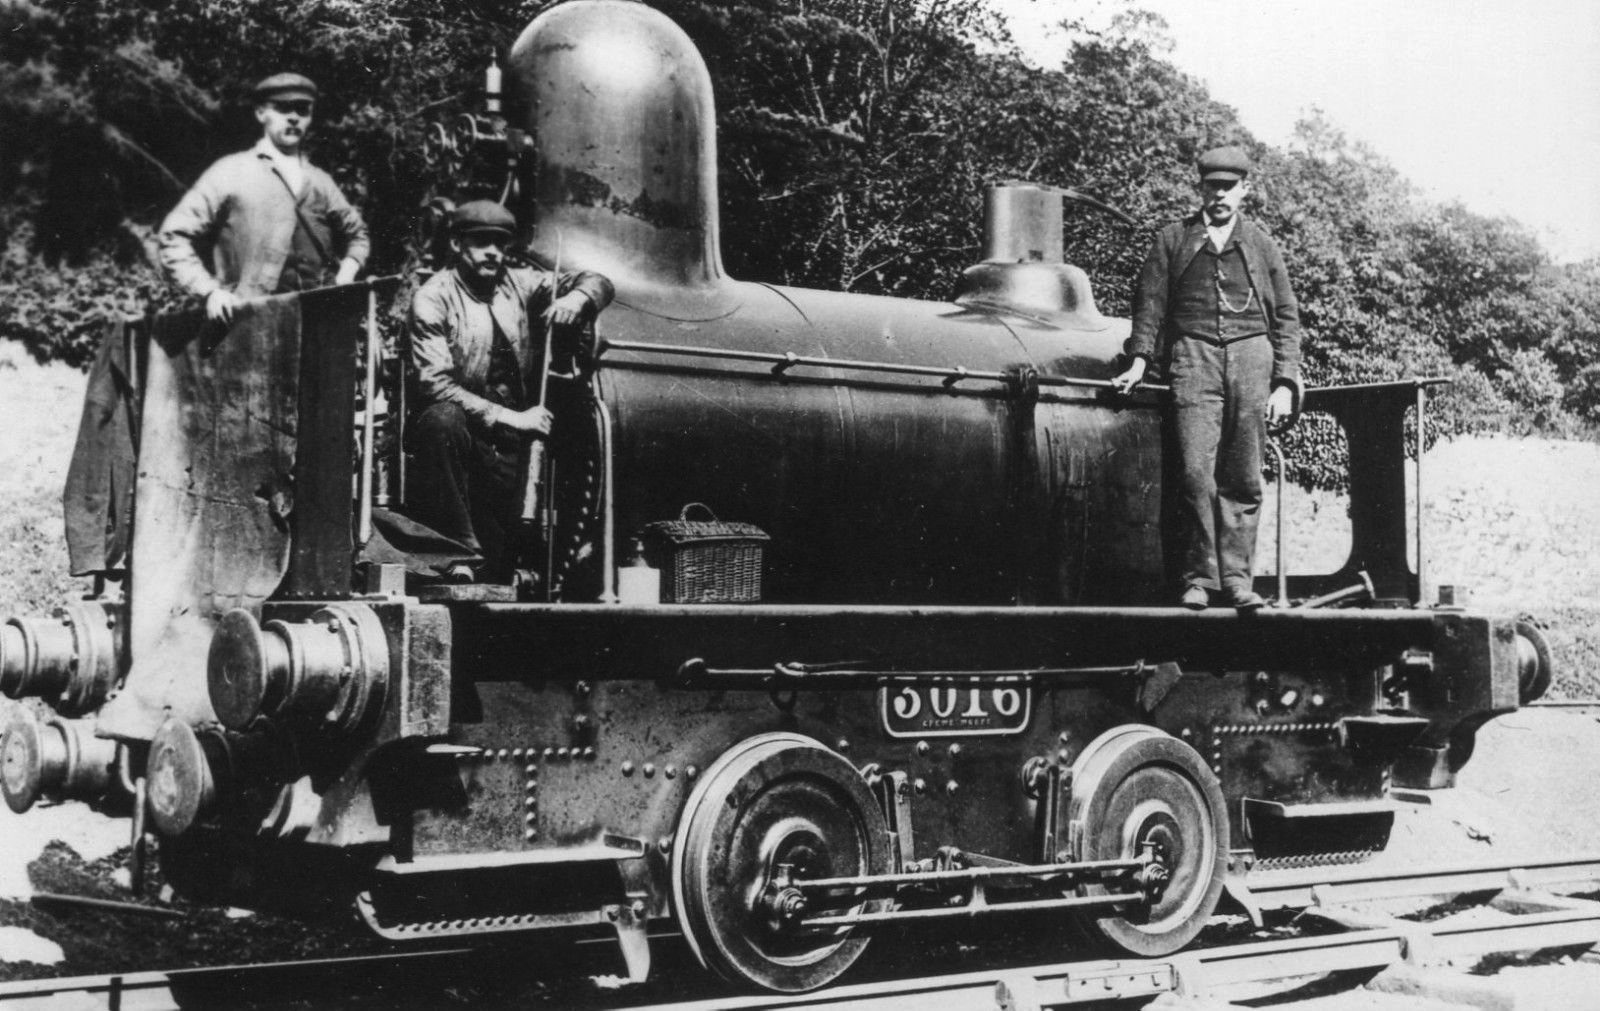 File:LNWR engine No.3016, 2360 Class.jpg